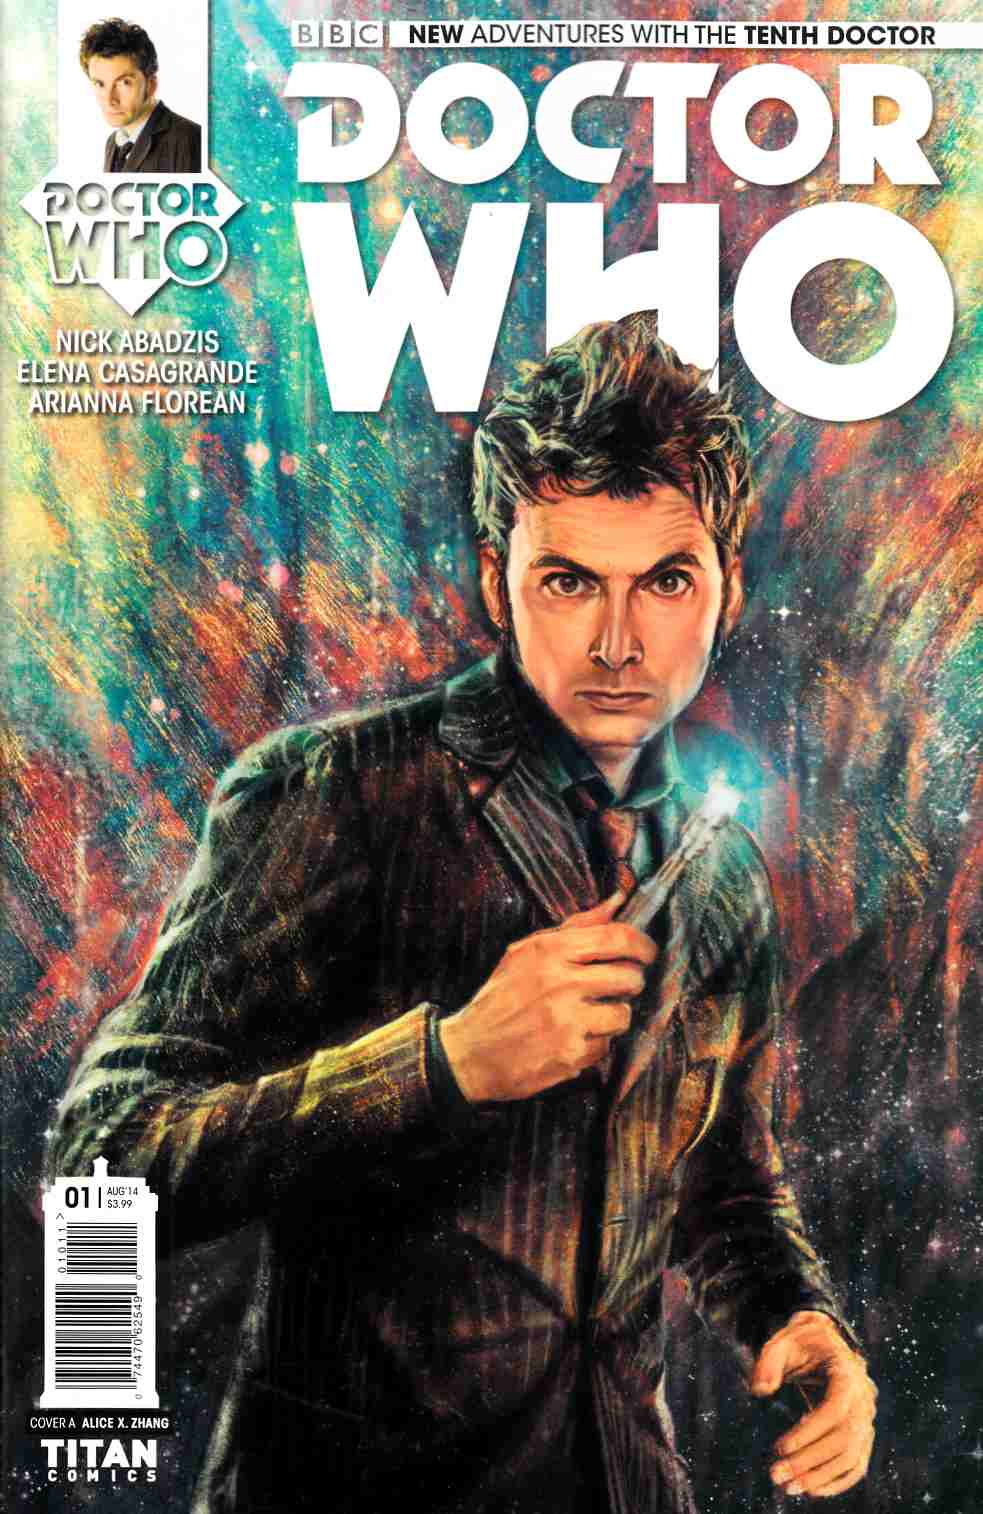 Doctor Who 10th Doctor #1 [Comic] THUMBNAIL